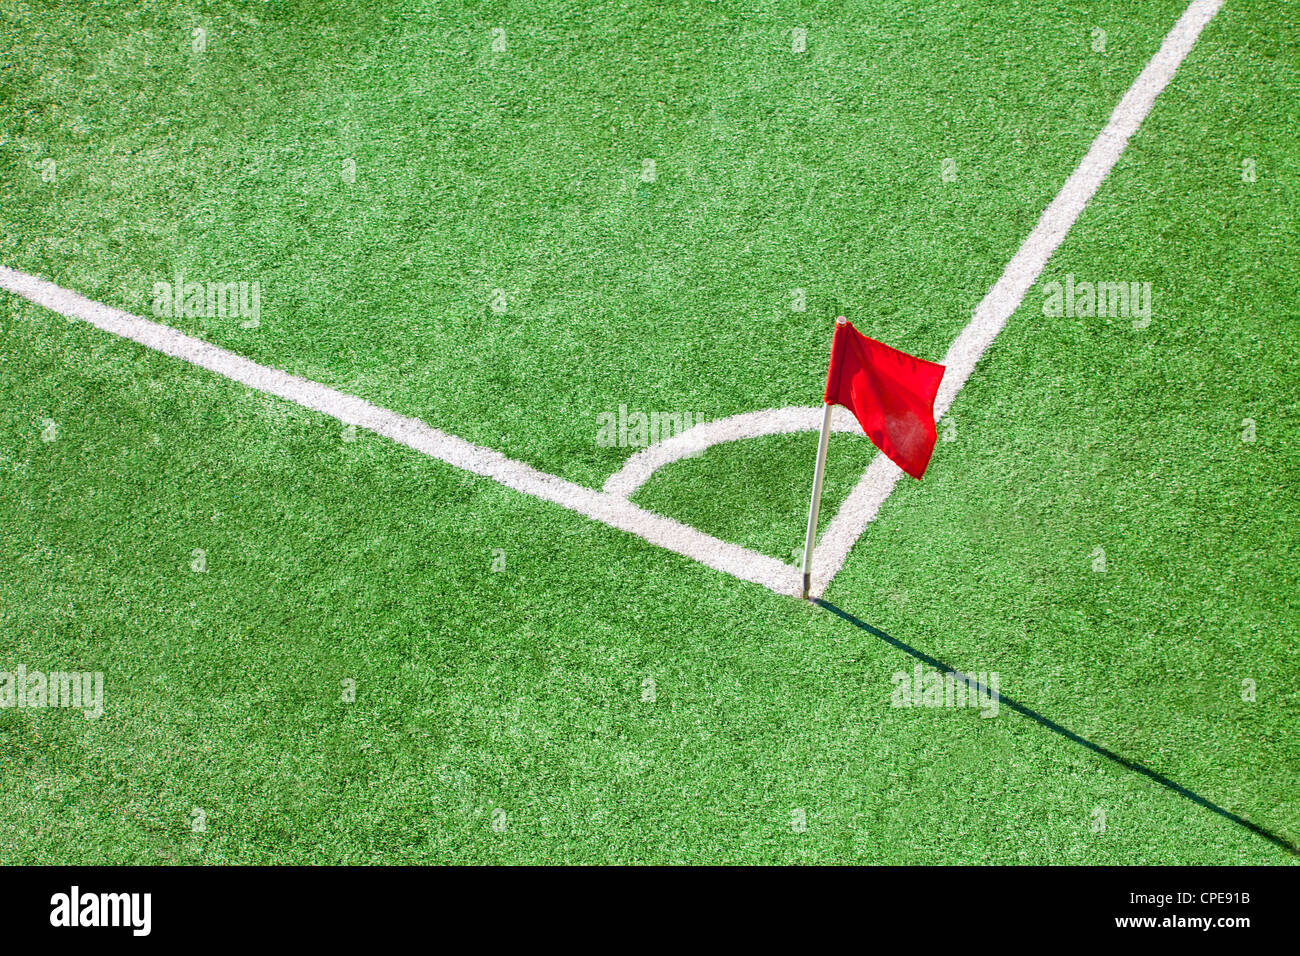 Official Soccer Corner Flags for Turf Fields